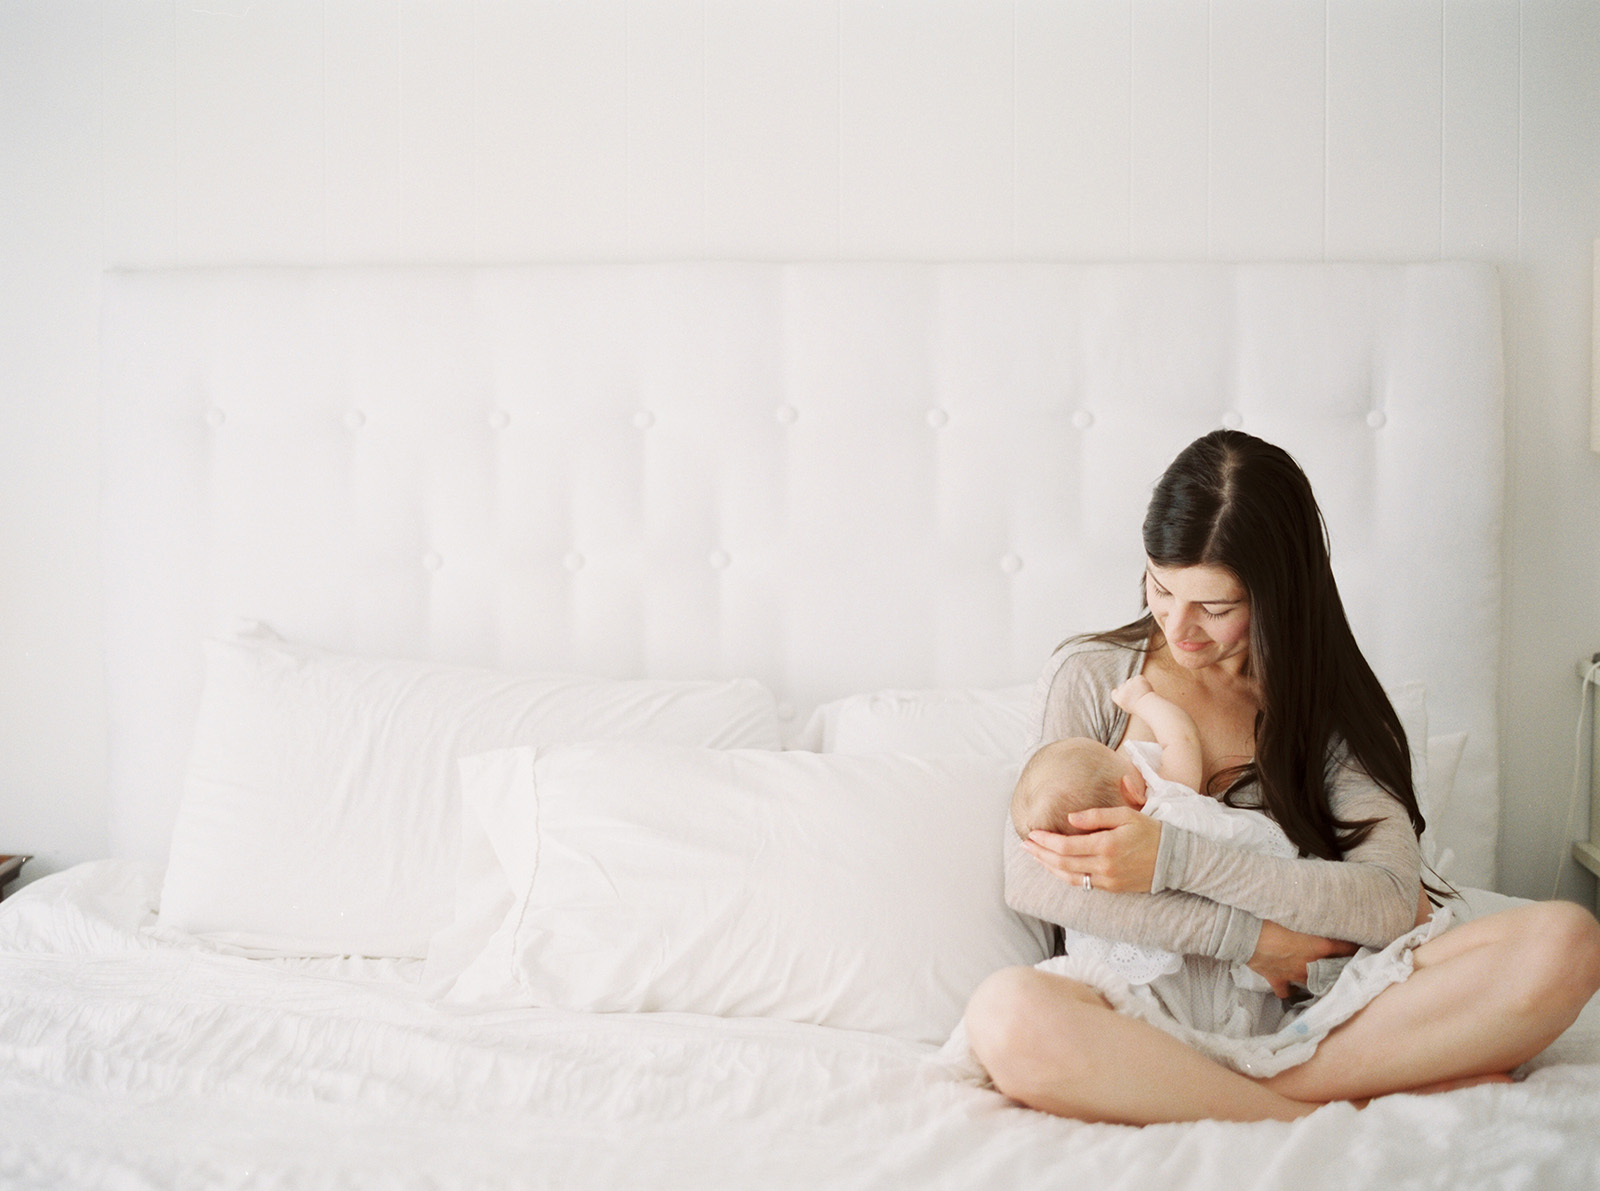 photo of mom breastfeeding newborn by film photographer Lexia Frank